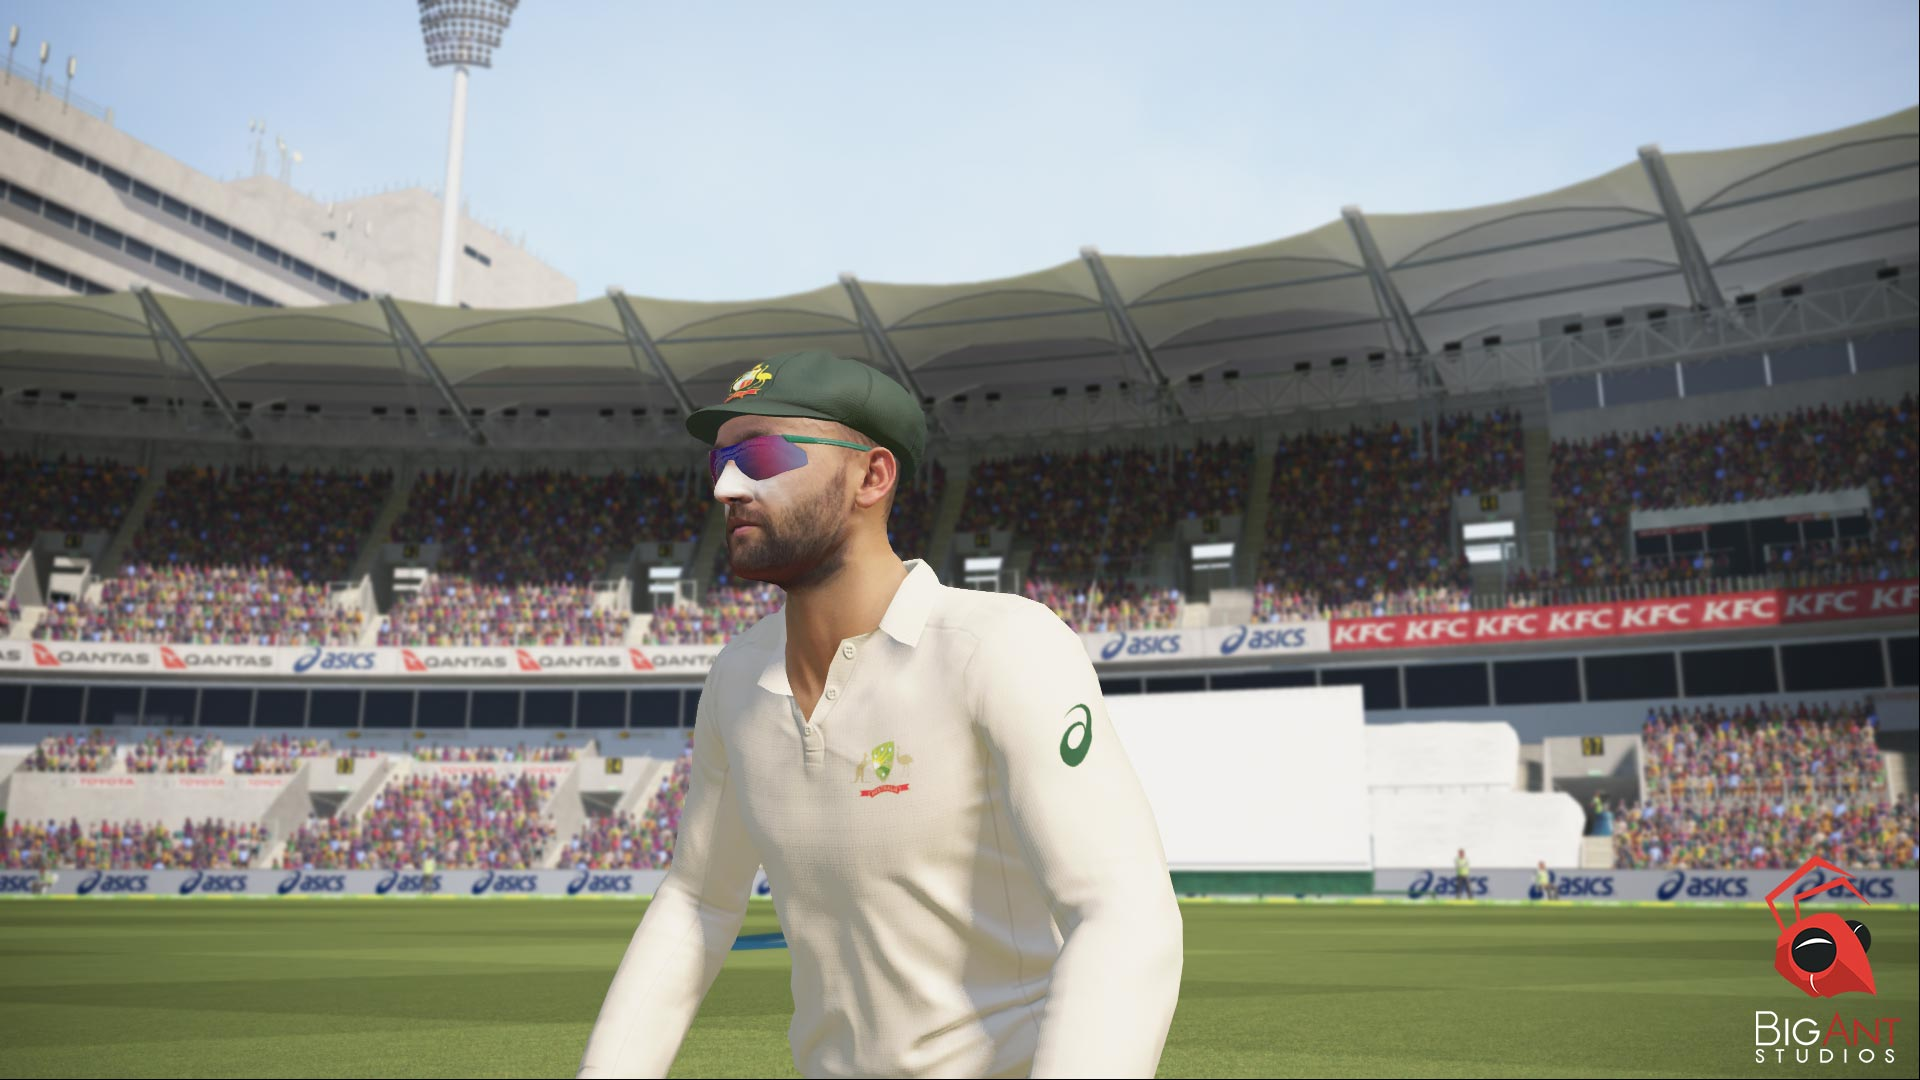 new Ashes Cricket game GOAT